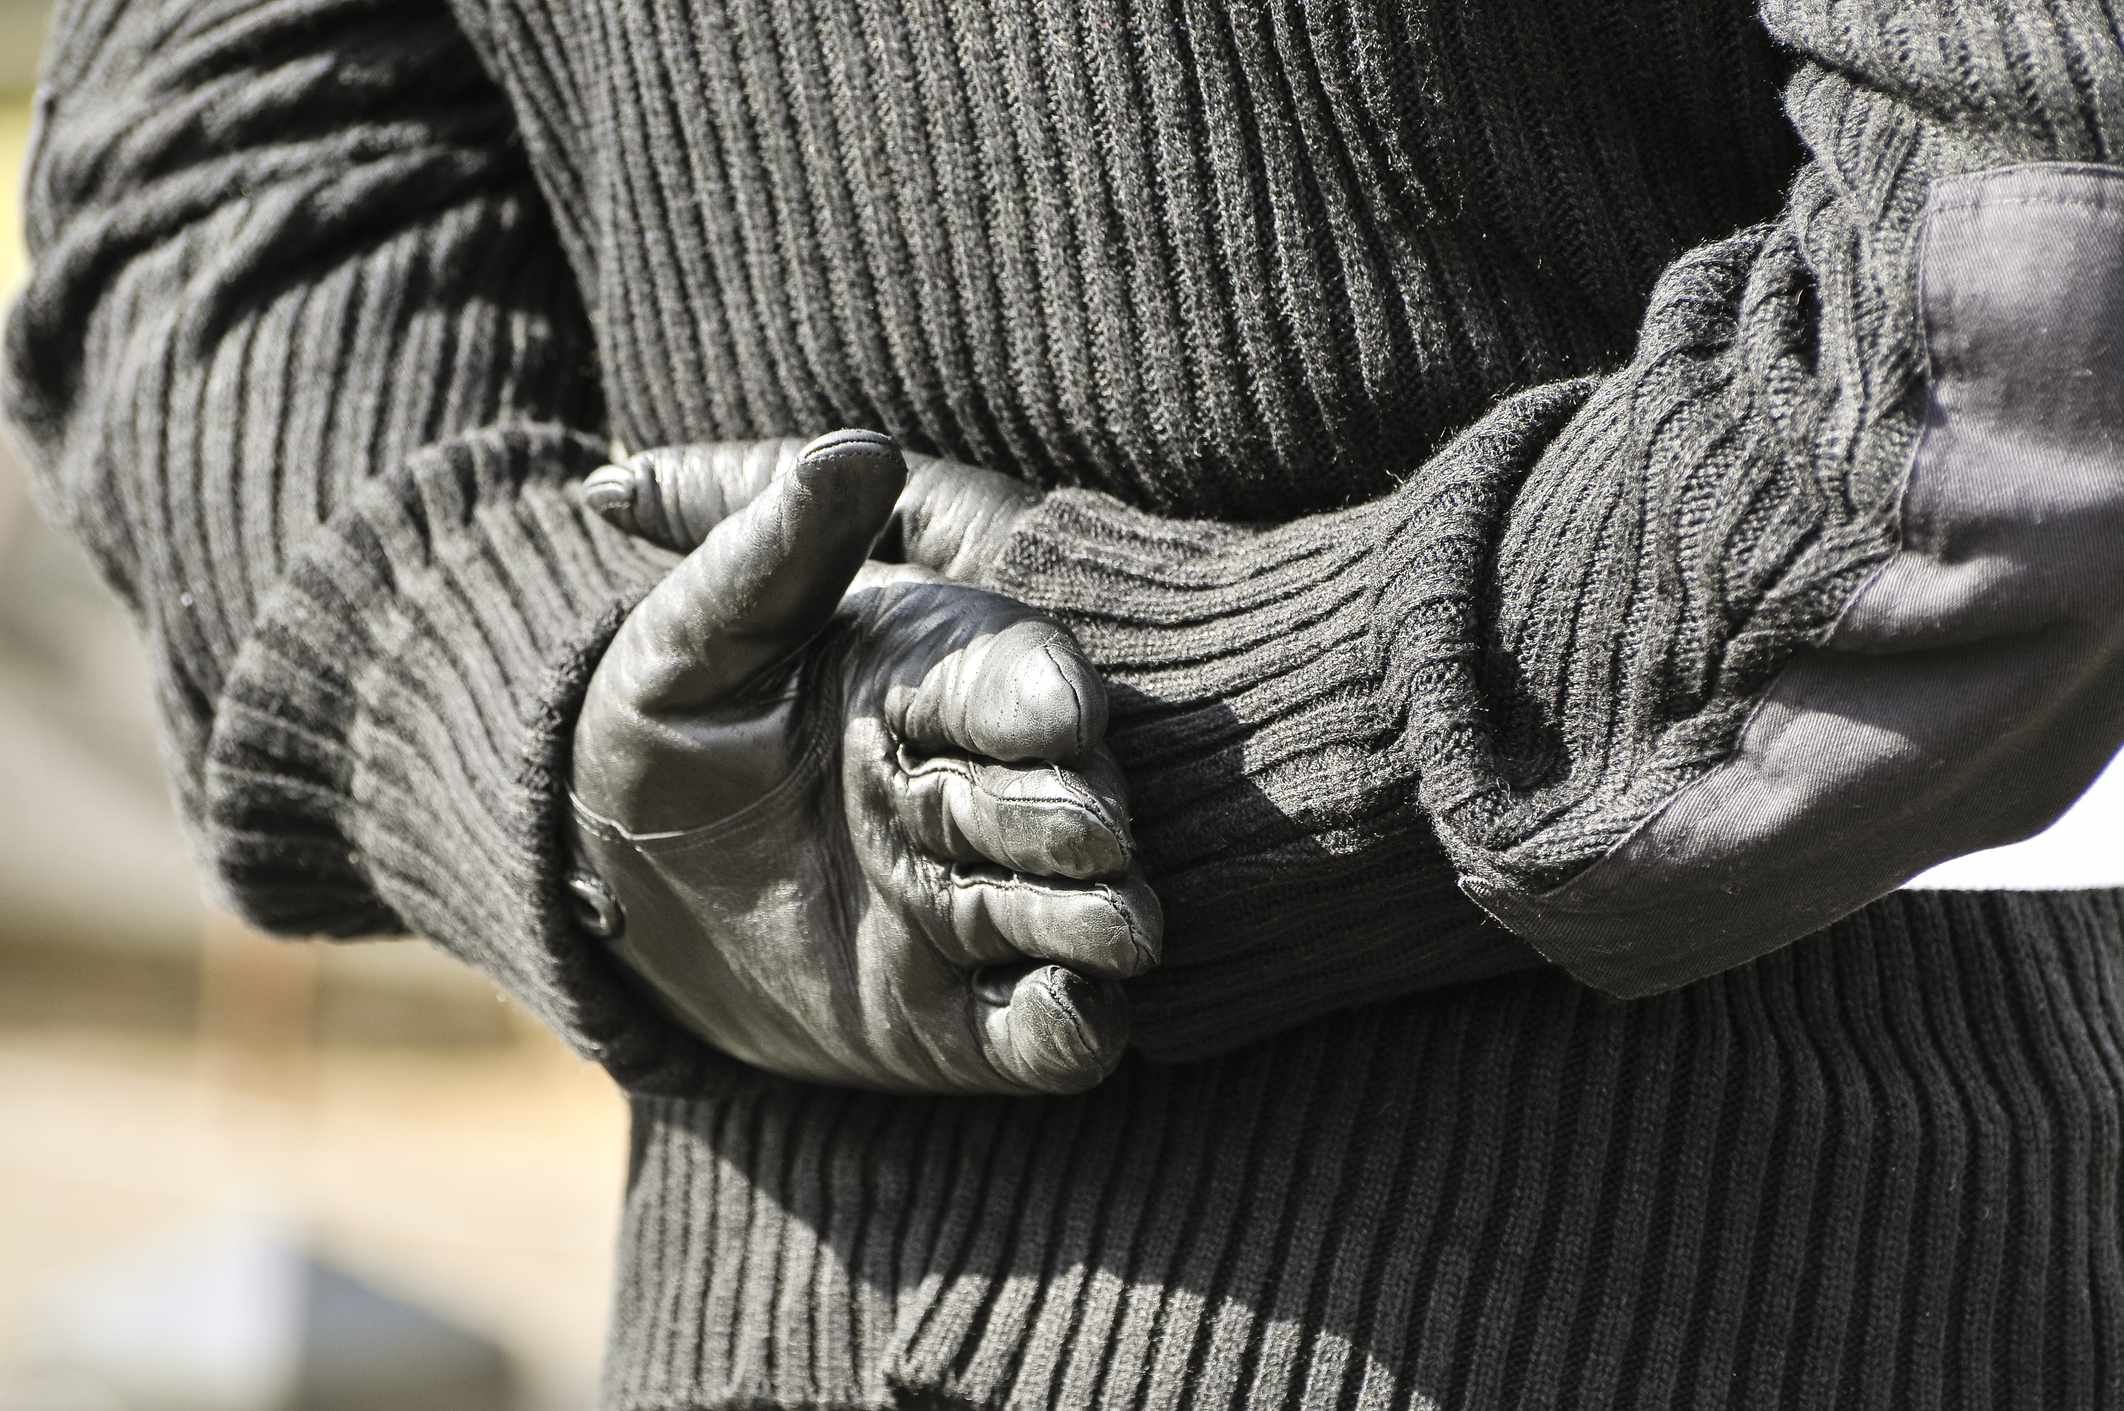 iStock-army militia gloves sweater man